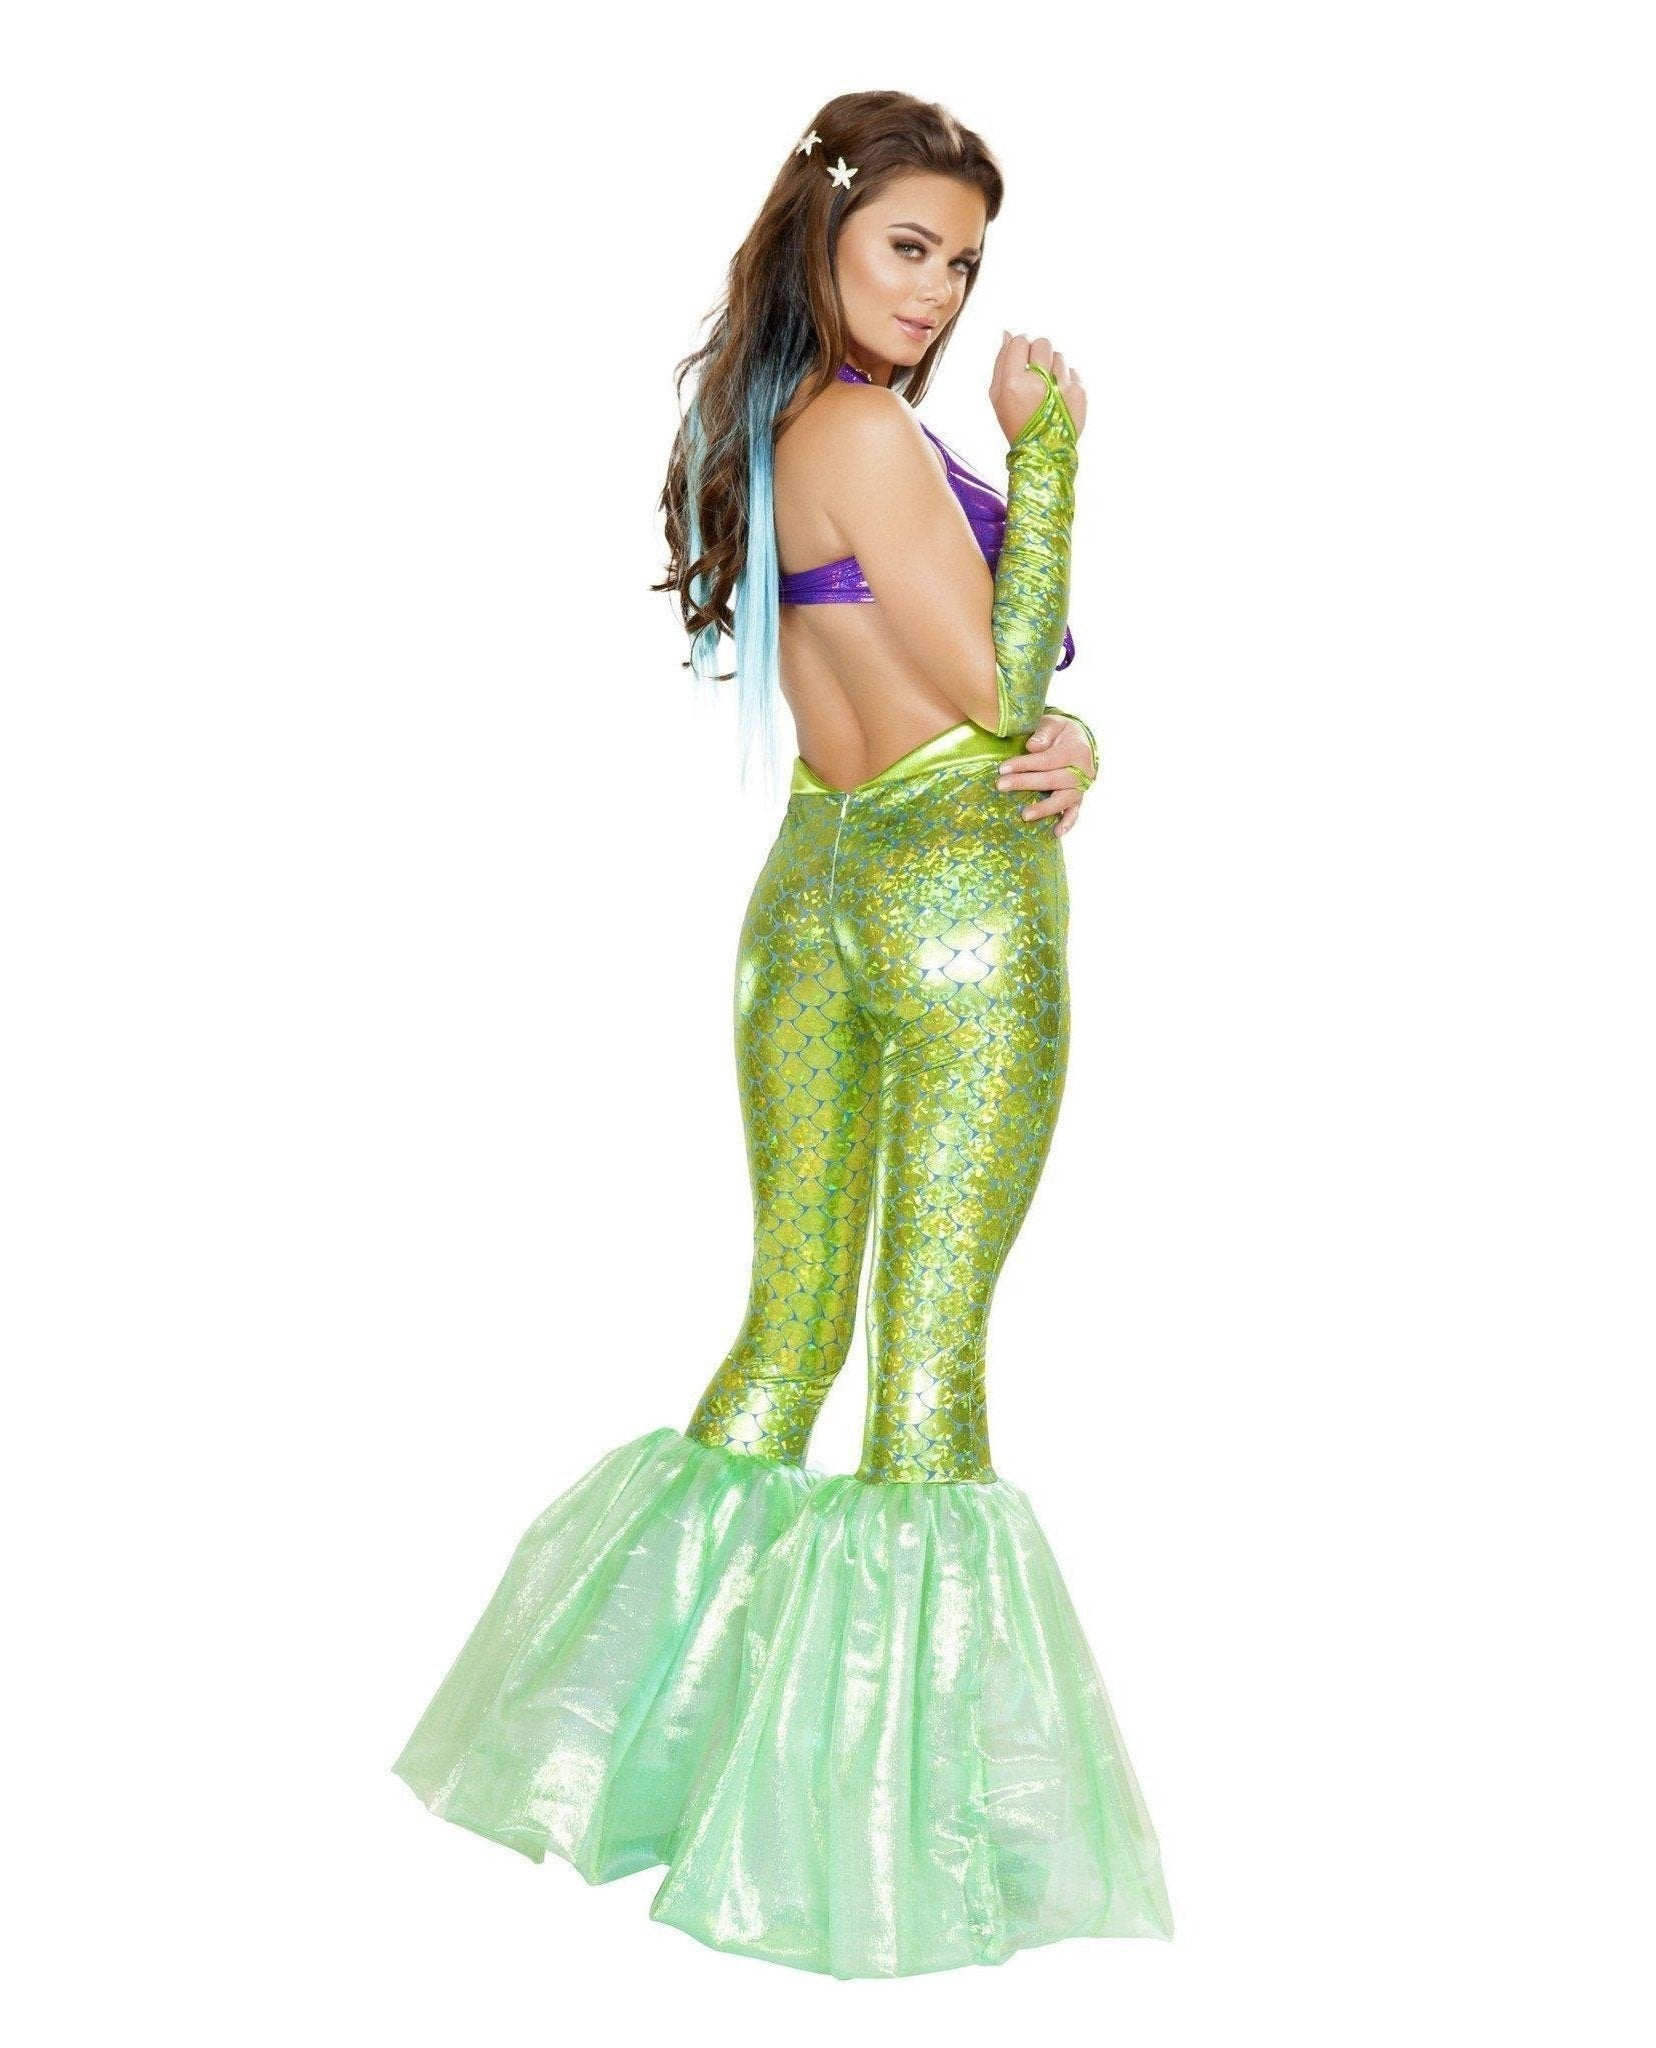 Poseidon's Daughter Mermaid Costume Costumes Size LargeColor Purple/GreenNakees